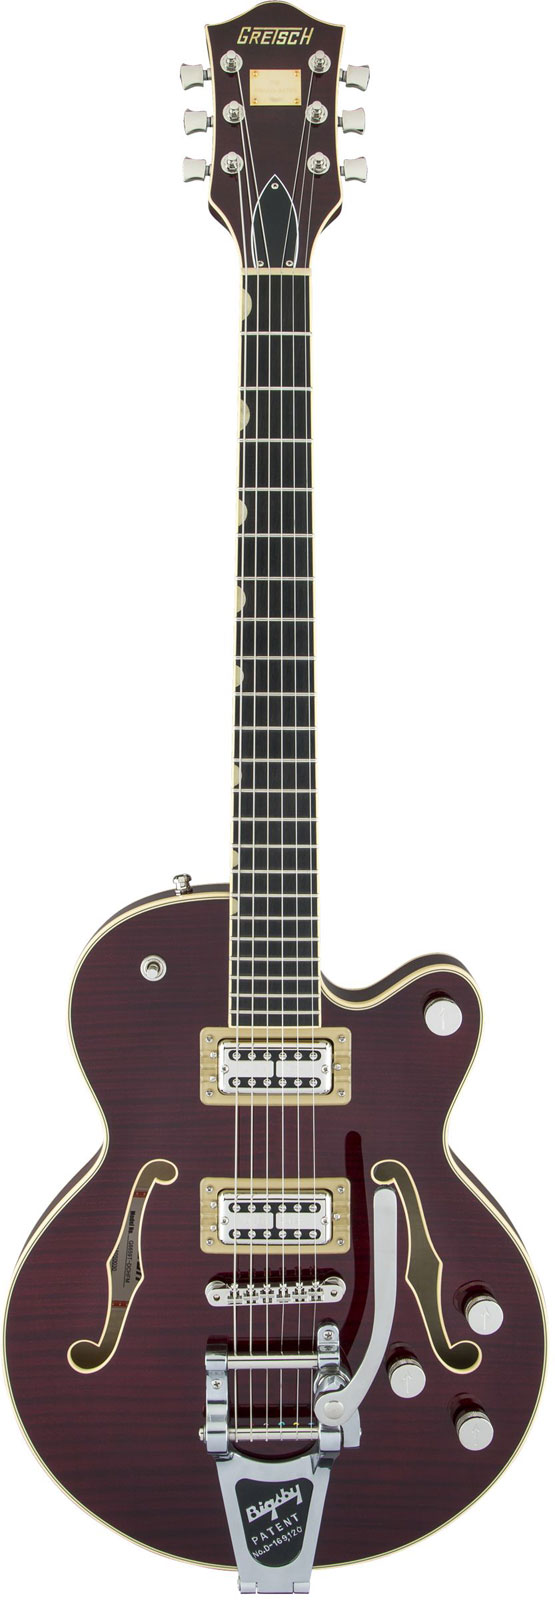 Gretsch Guitars G6659tfm Players Edition Broadkaster Jr. Bigsby Dark Cherry Stain